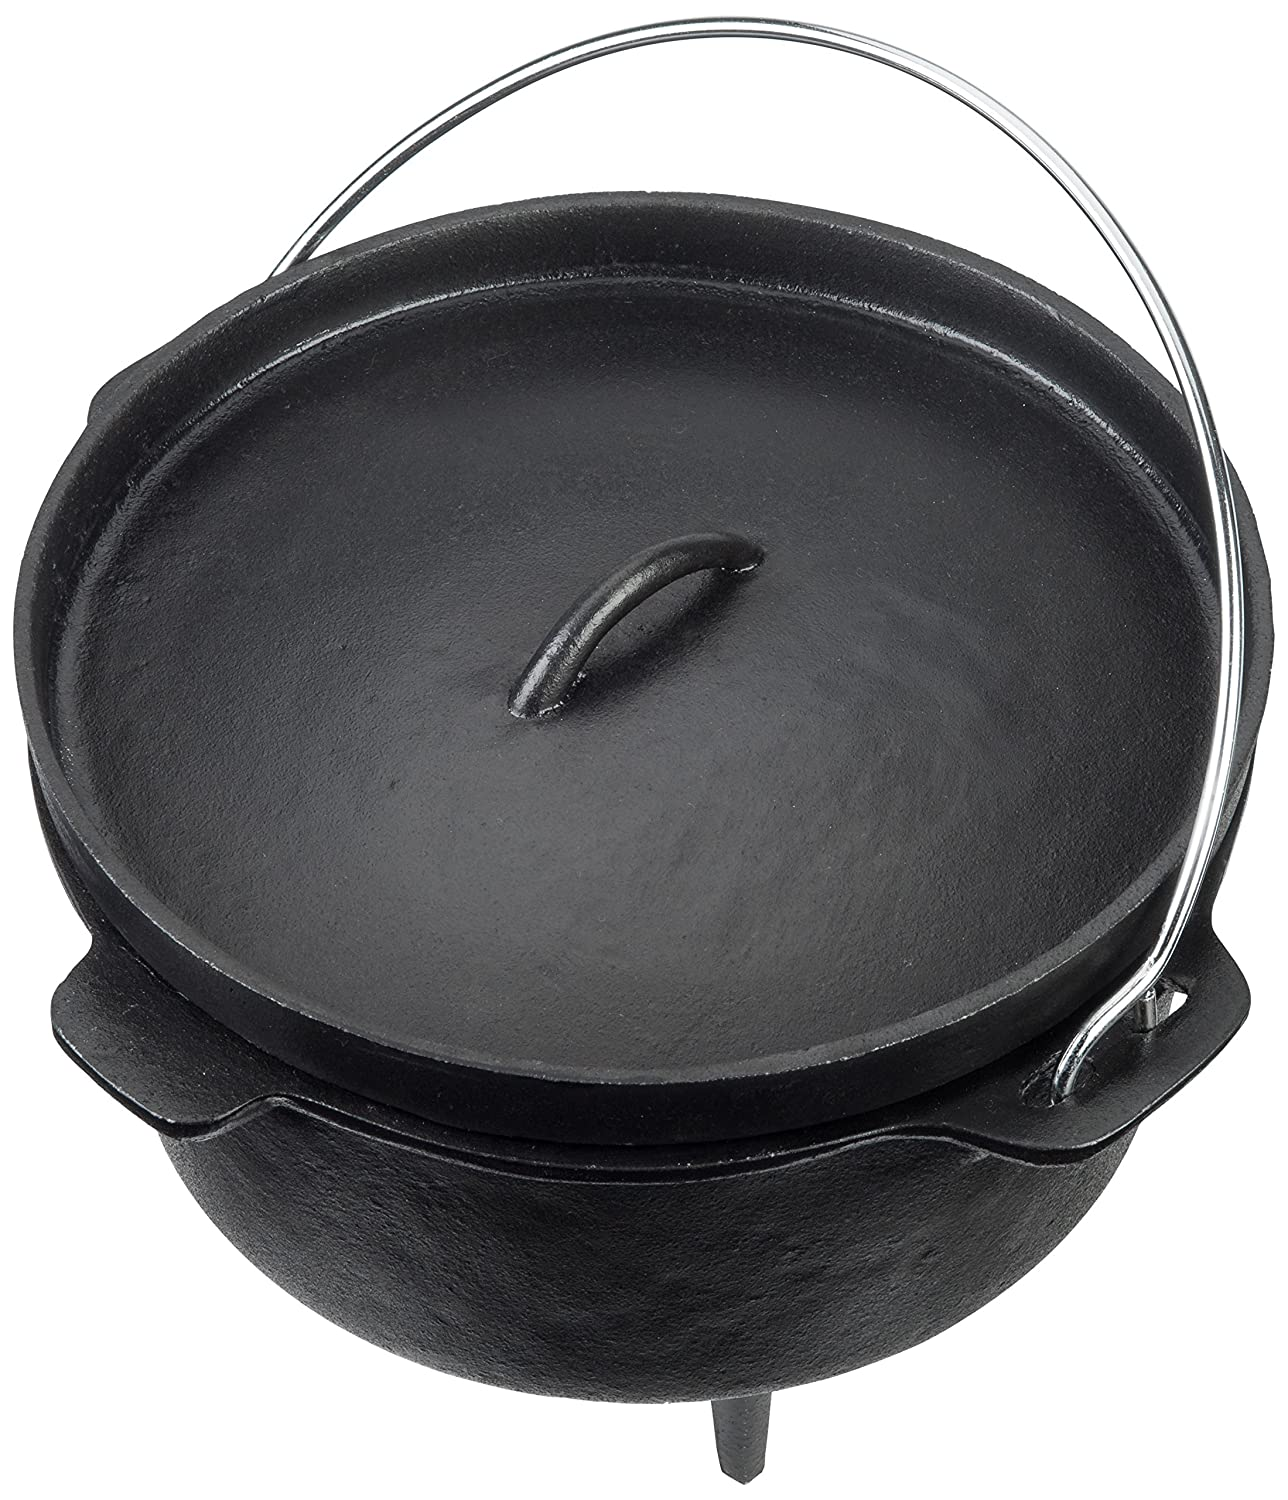 Landmann Dutch Oven, Black 14200